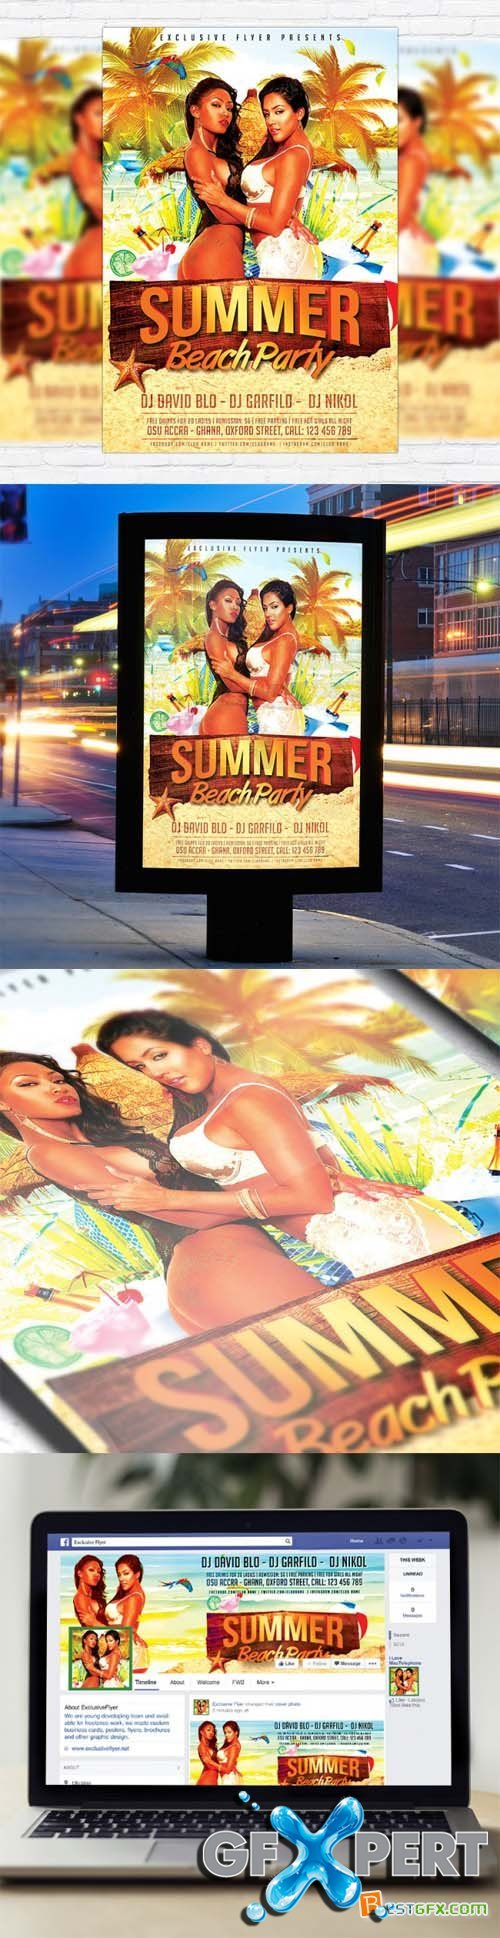 Flyer Template - Summer Beach Party 3 + Facebook Cover